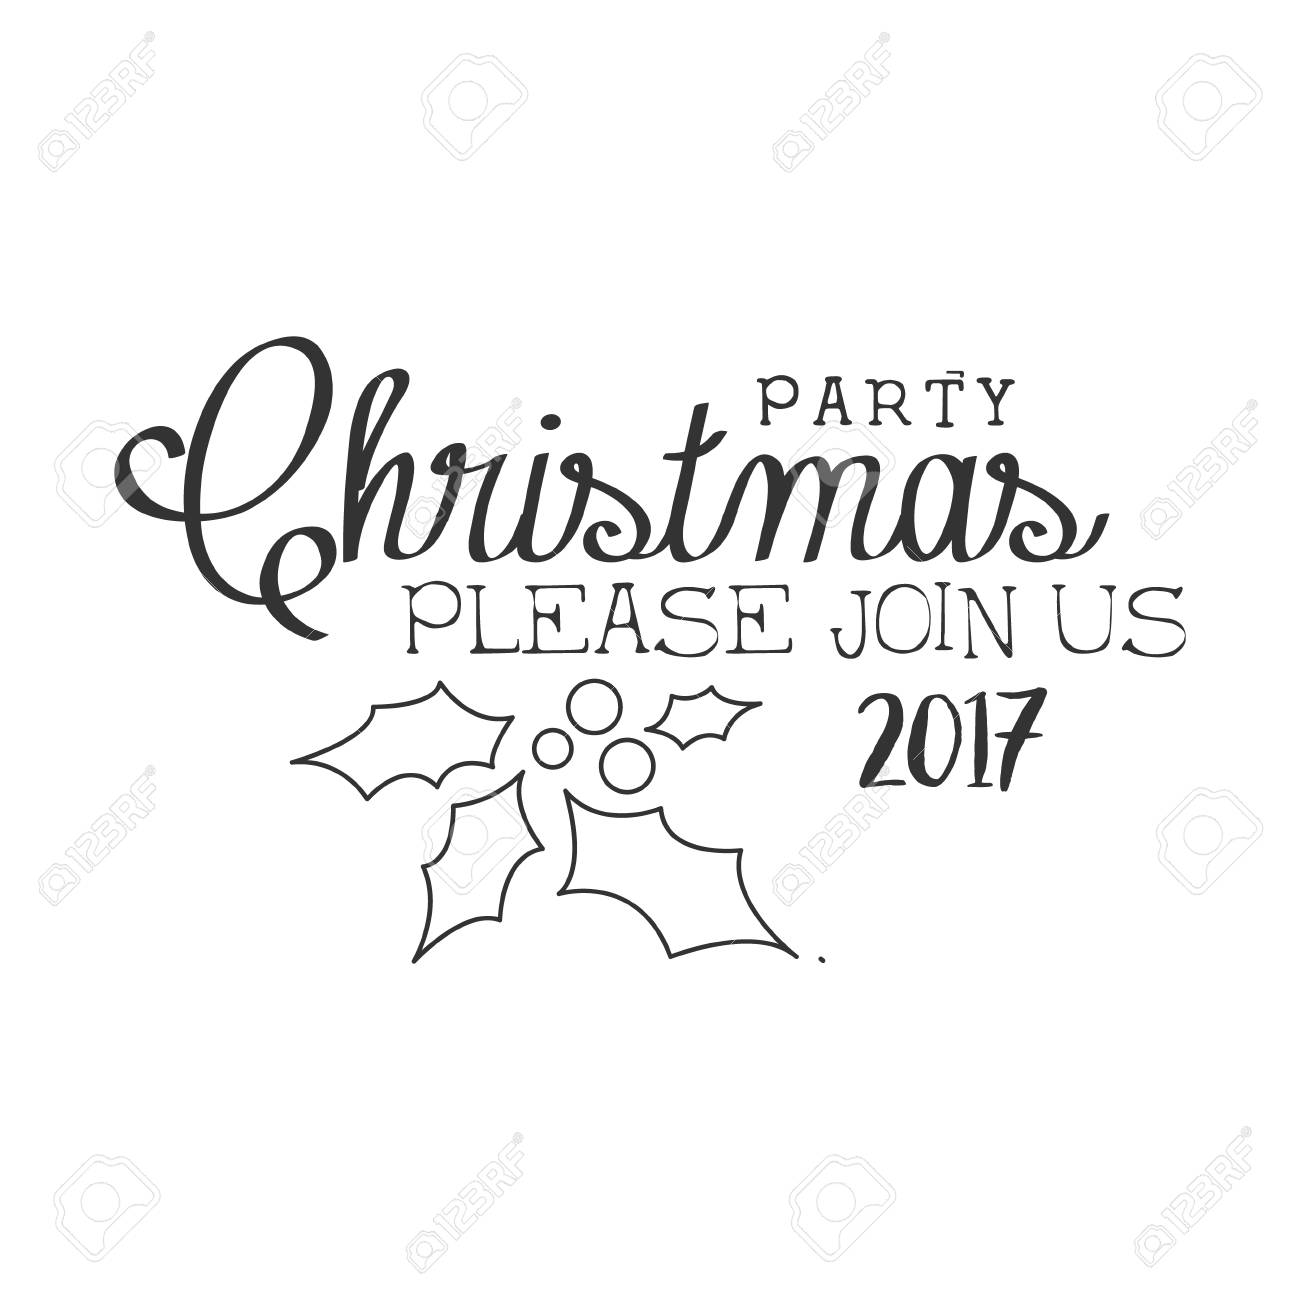 2017 christmas party black and white invitation card design template